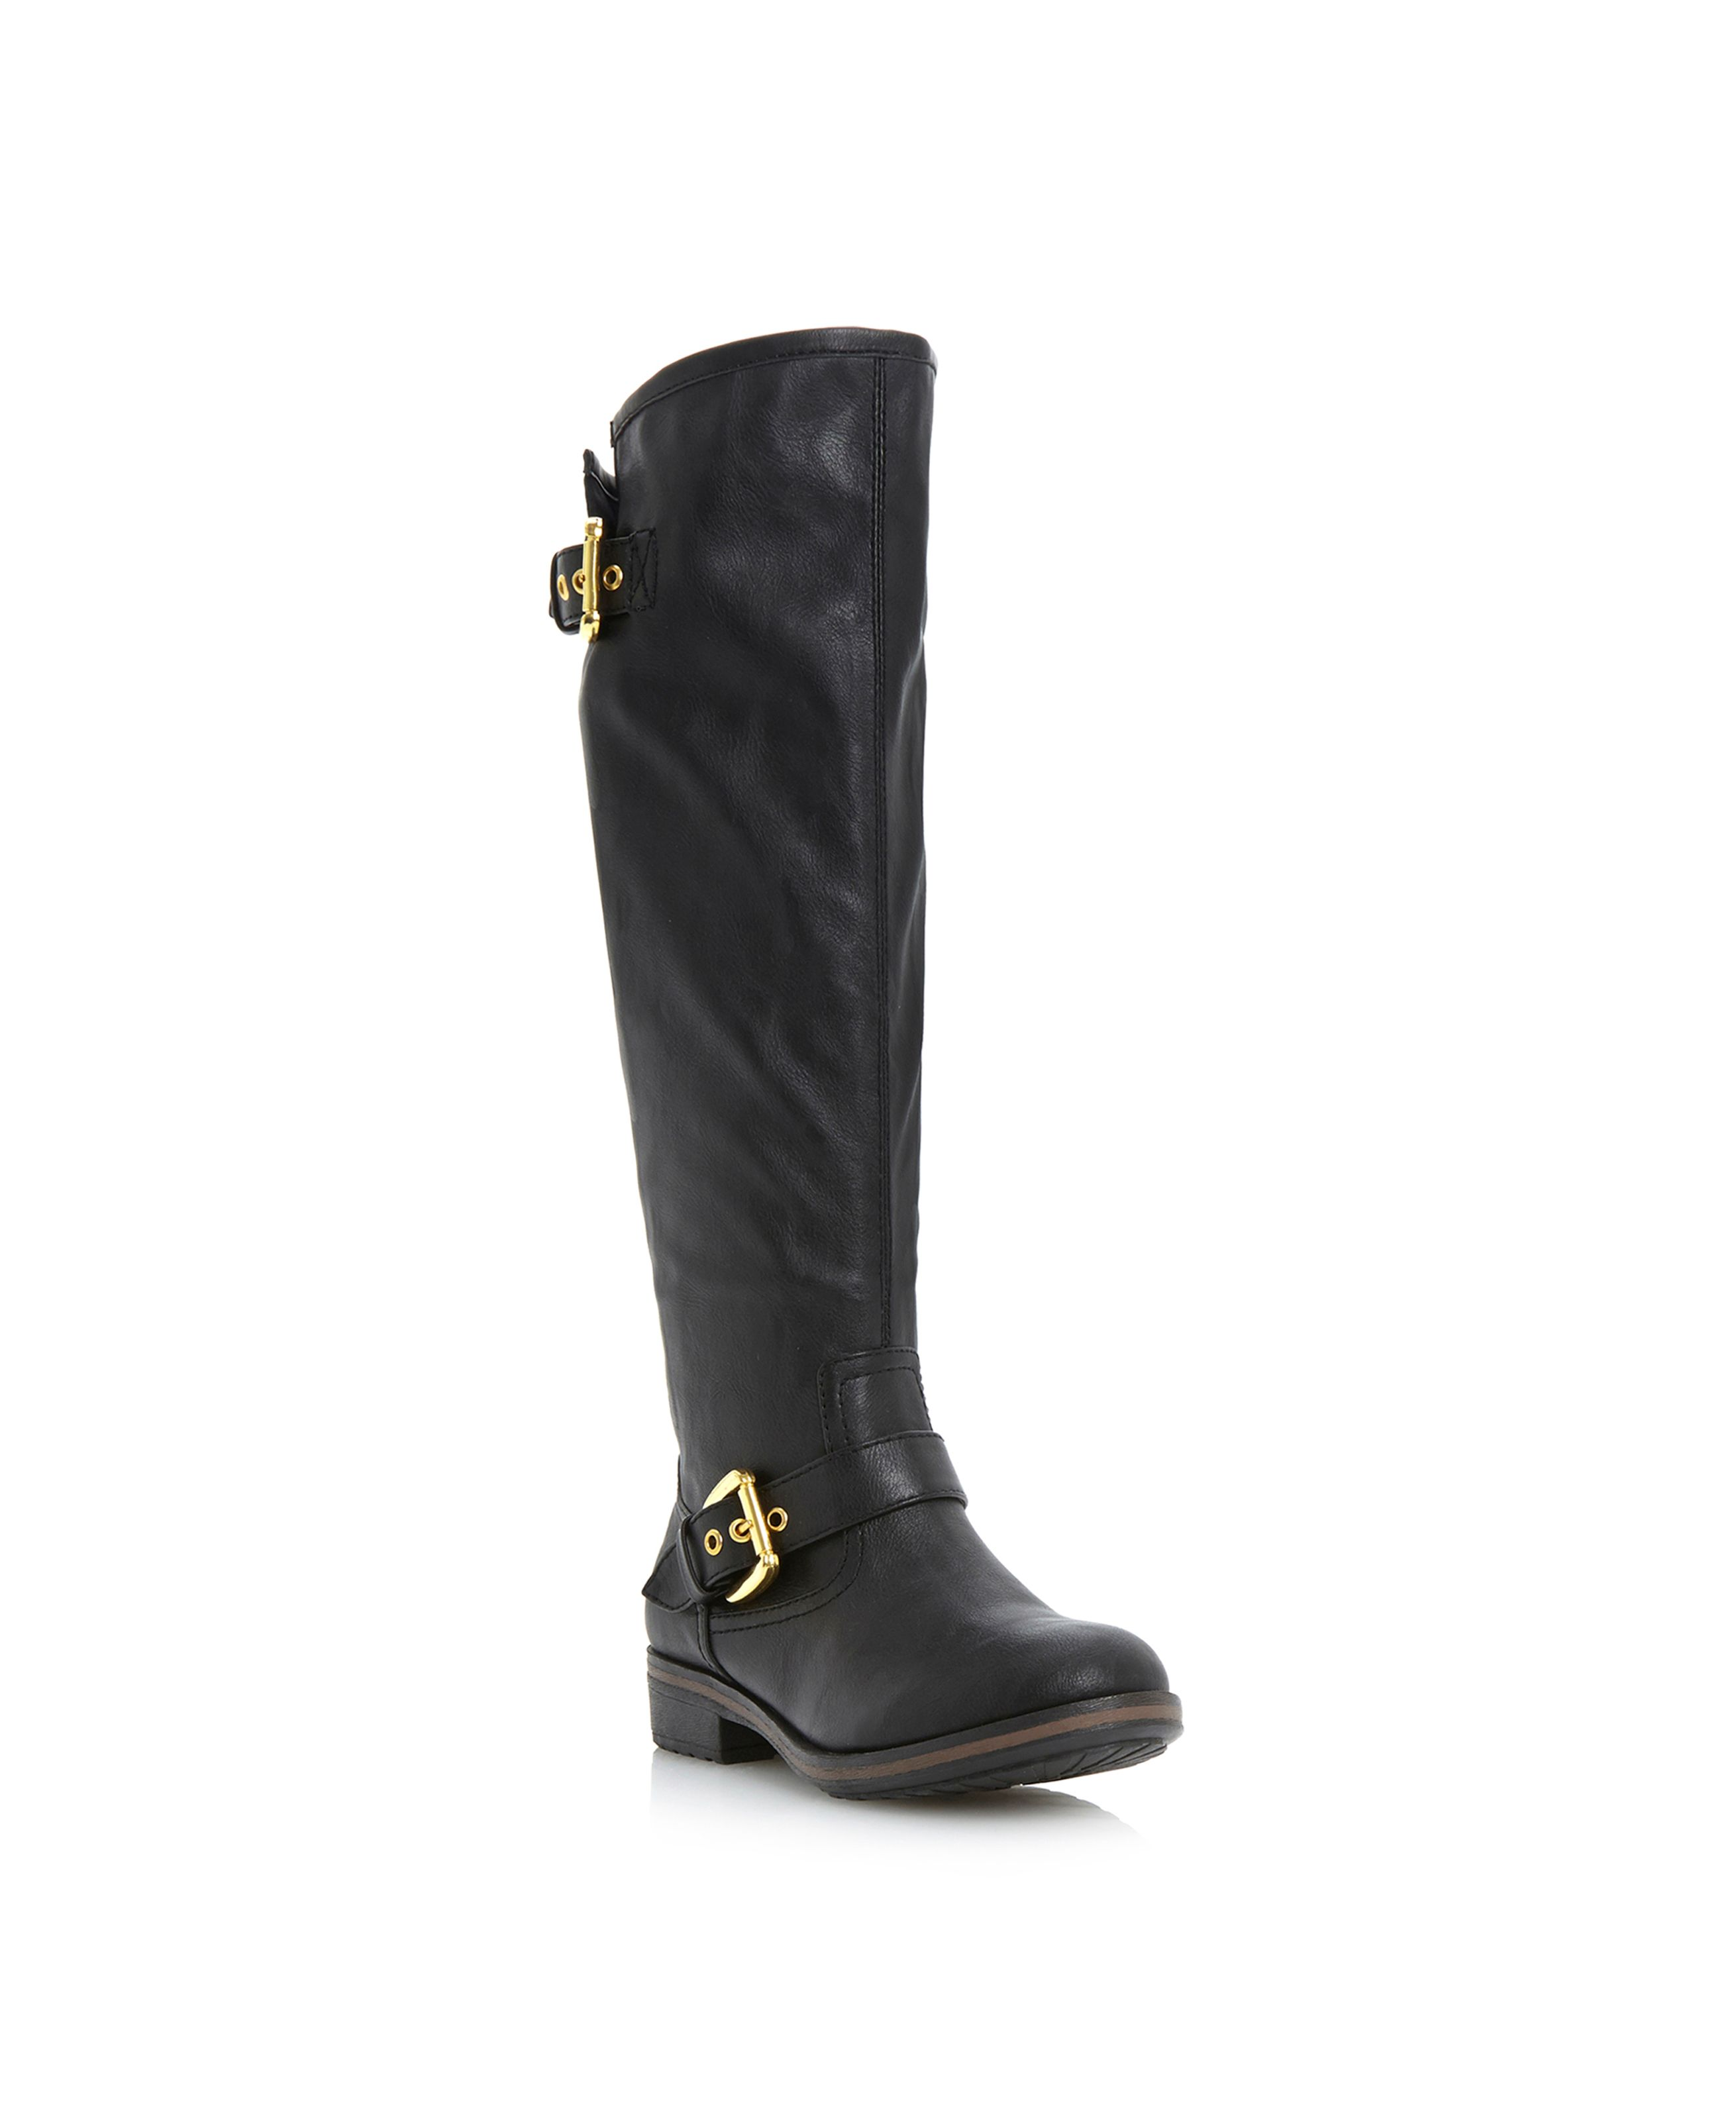 Tumbler-zip back knee boots